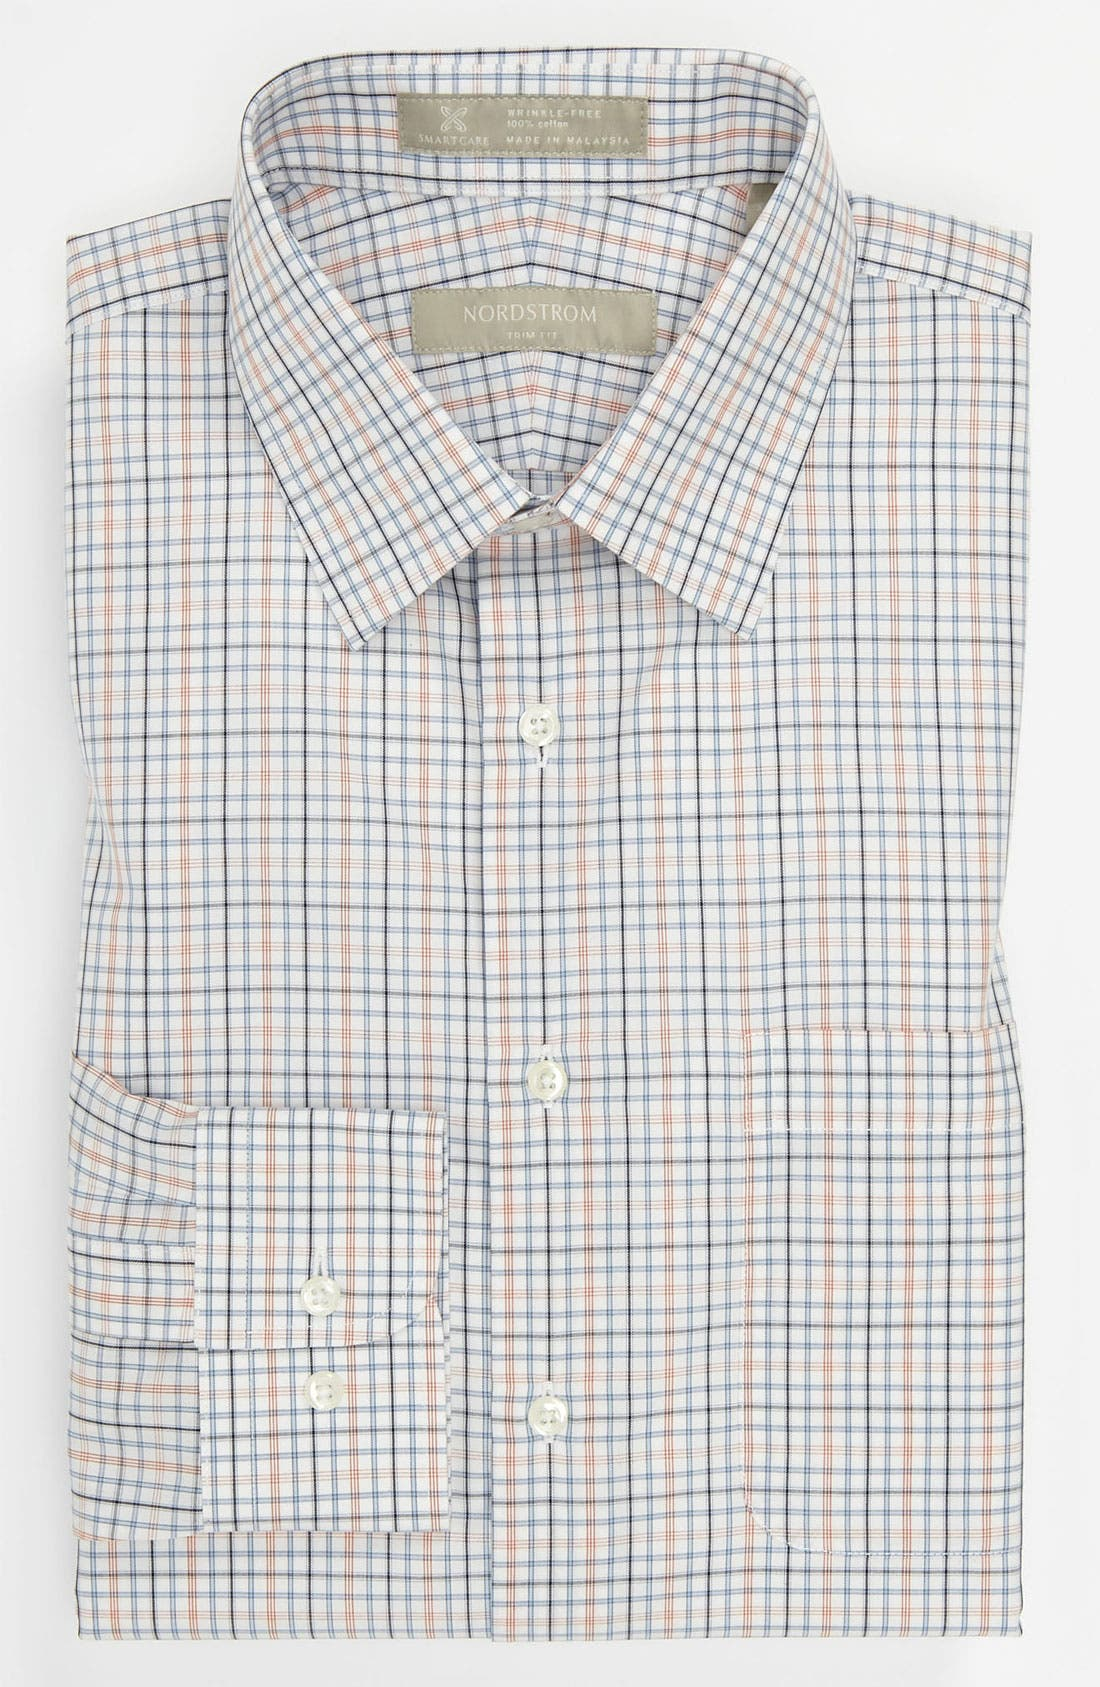 Nordstrom Smartcare<sup>™</sup> Trim Fit Dress Shirt,                             Main thumbnail 1, color,                             800